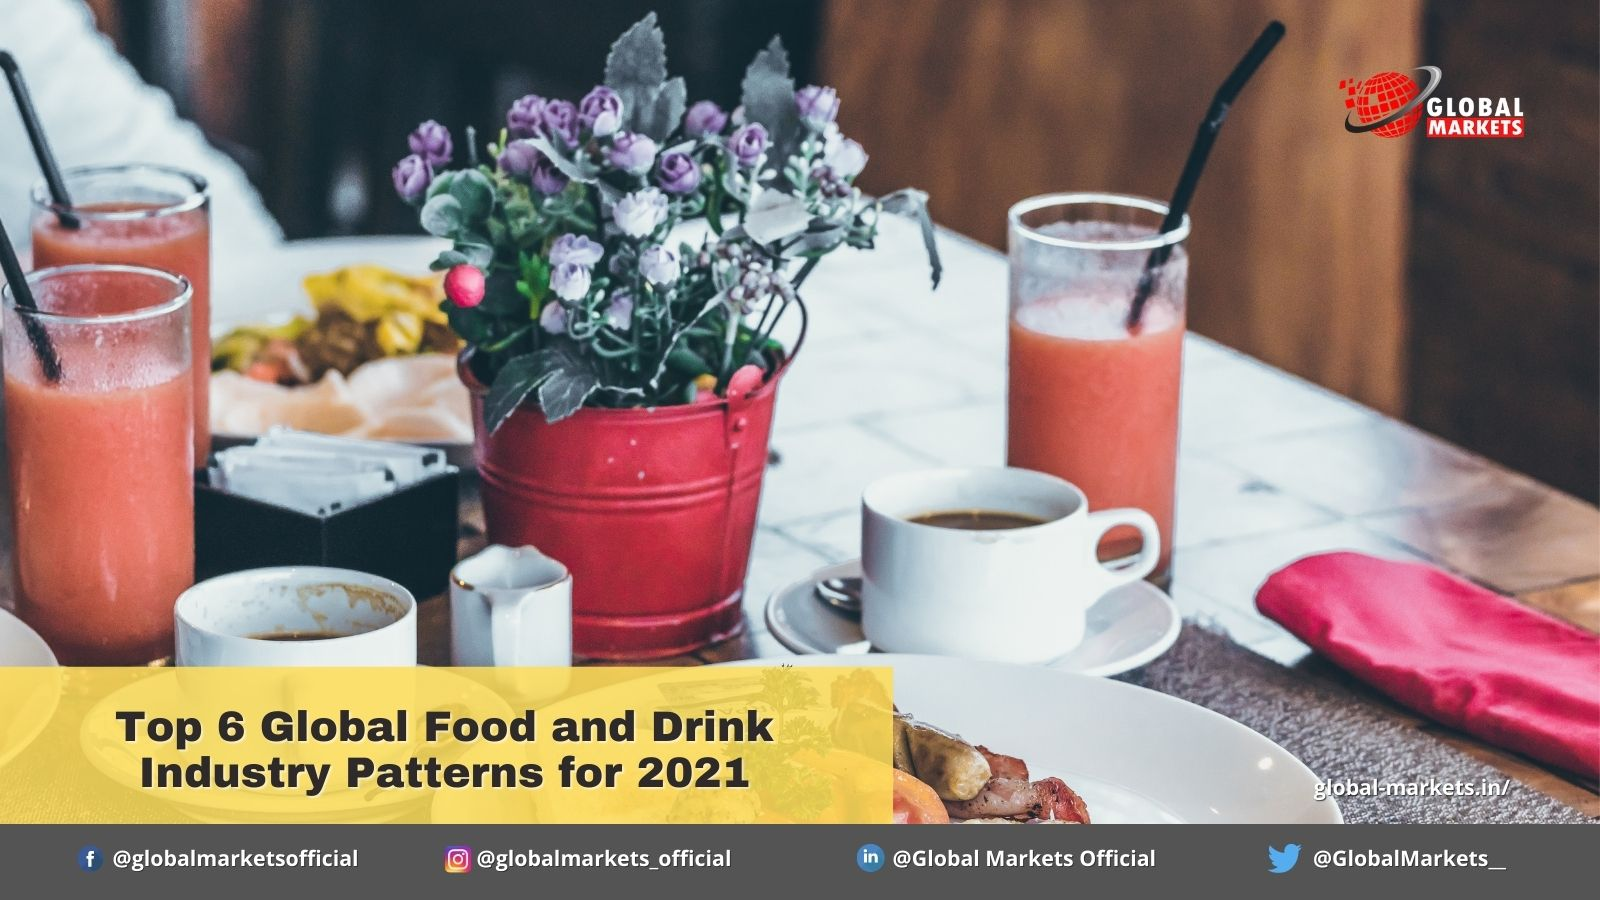 Top 6 Global Food and Drink Industry Patterns for 2021